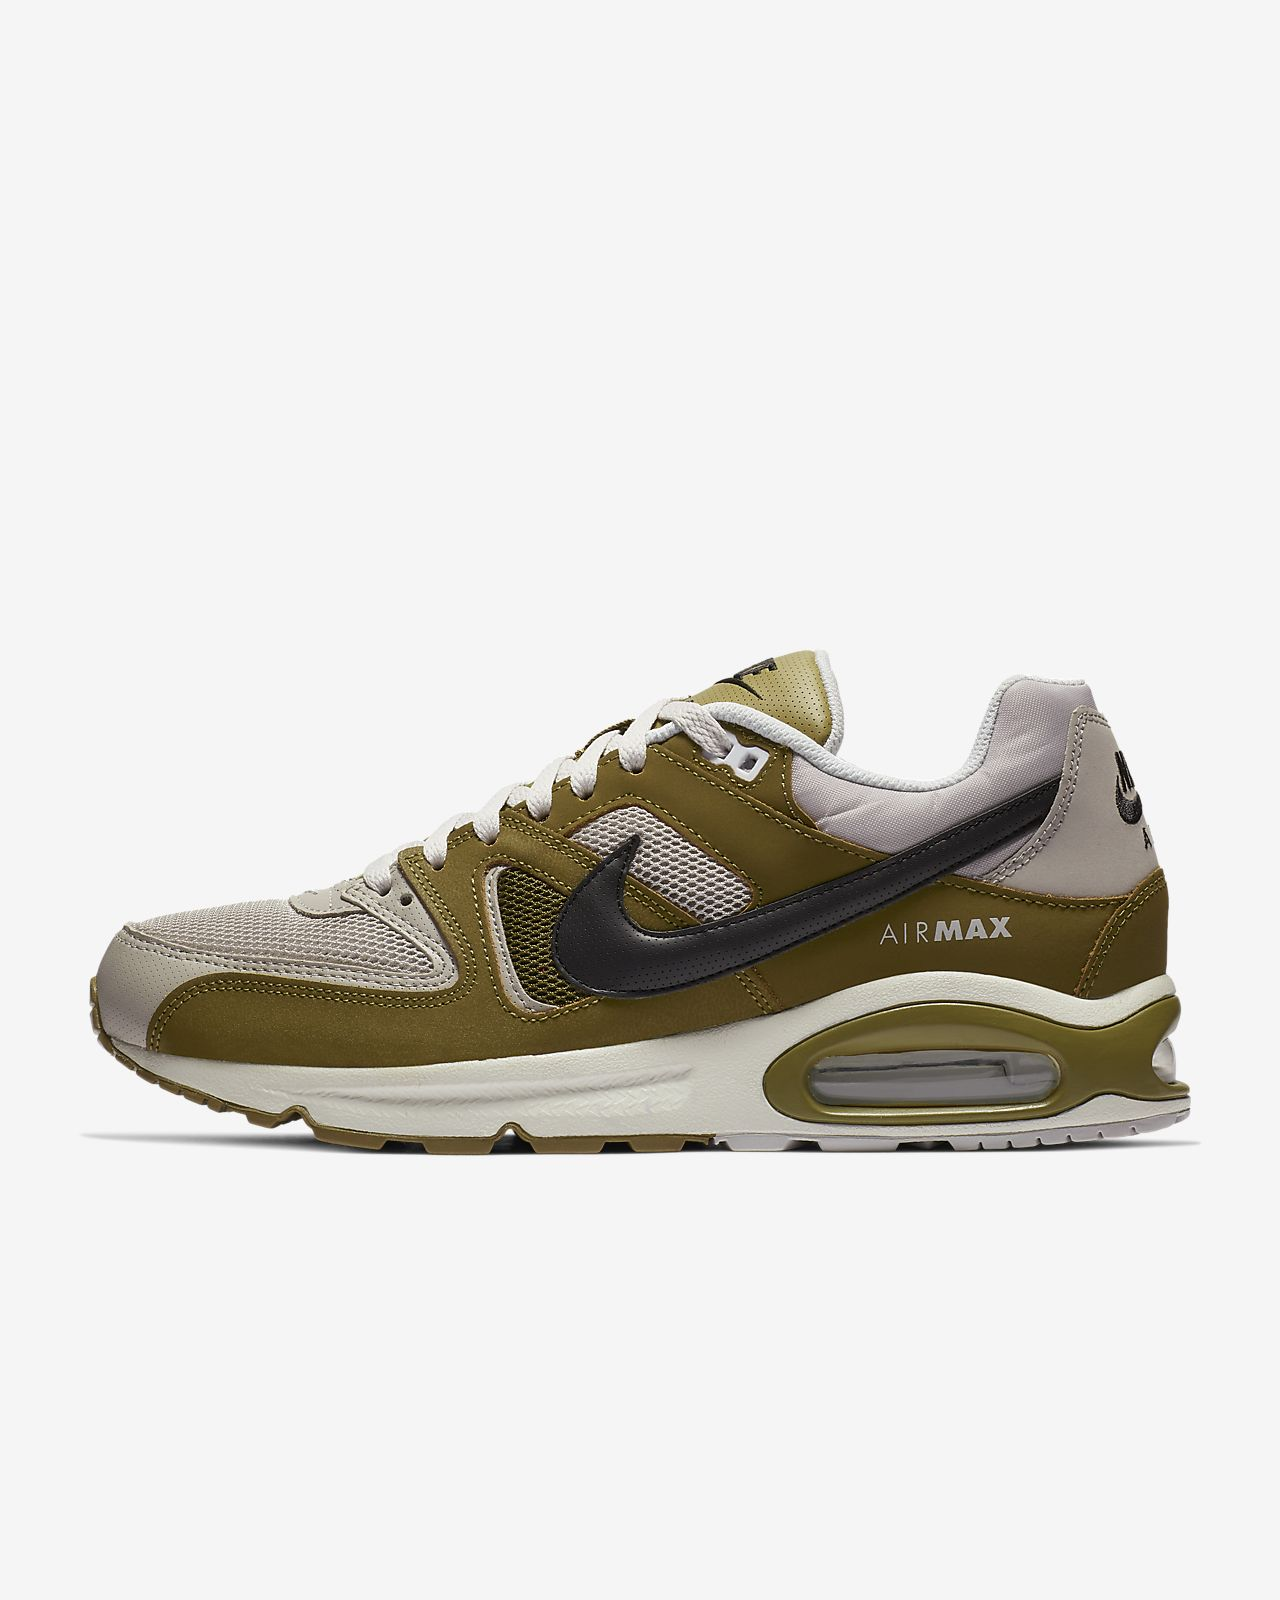 factory authentic 9ce09 cdab2 ... Nike Air Max Command Mens Shoe